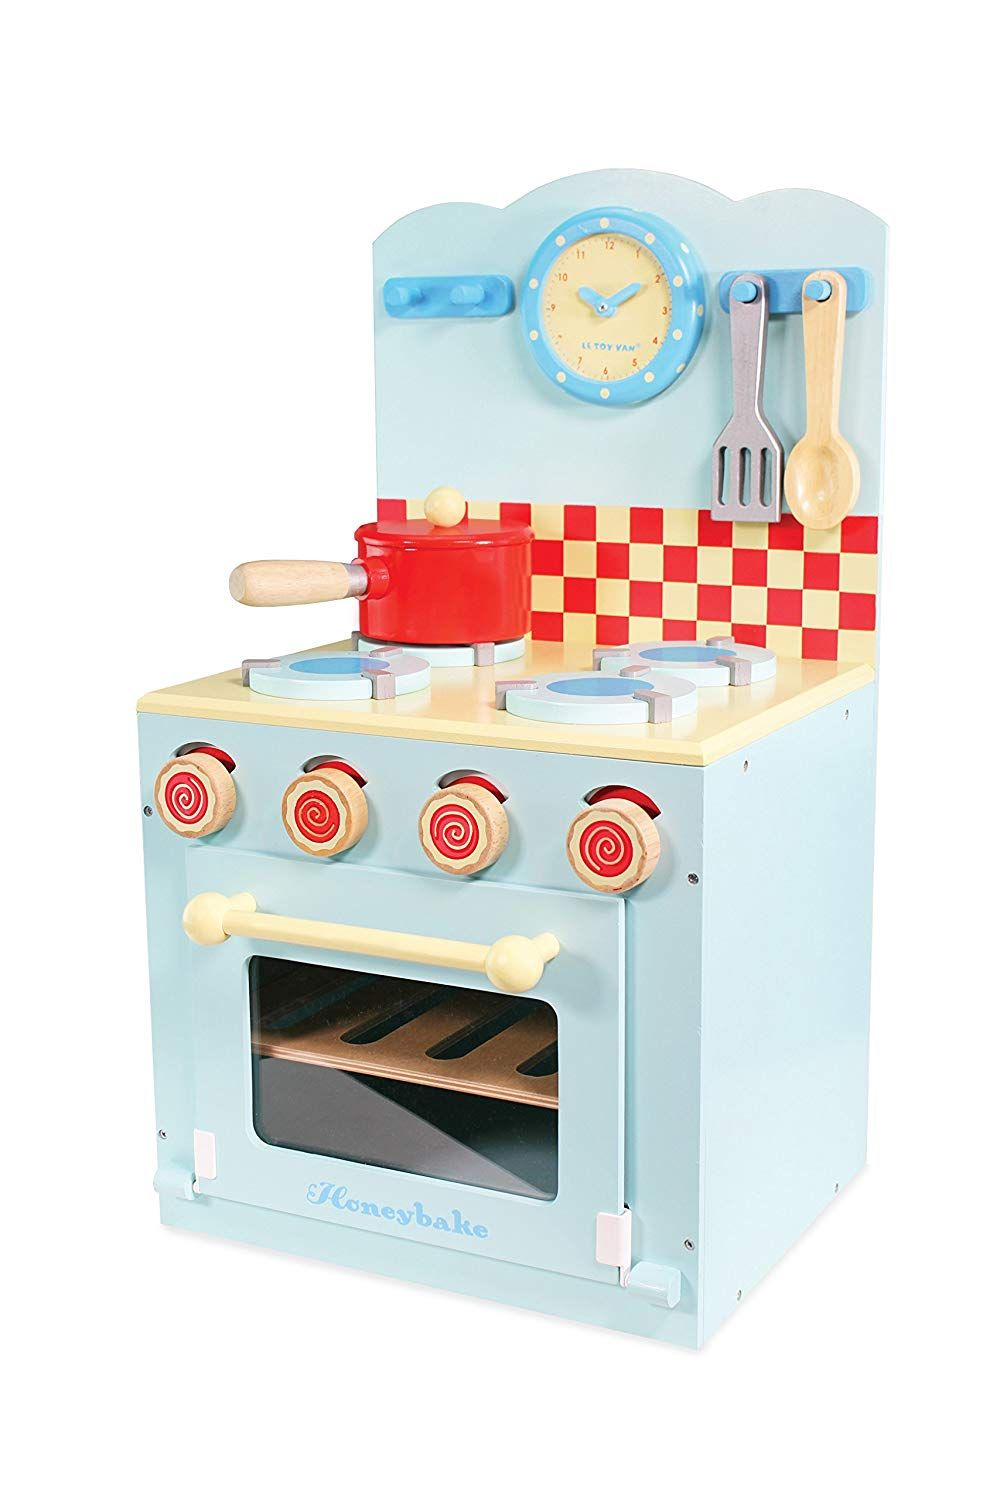 Le Toy Van Honeybake Wooden Oven And Hob Playset Blue Amazon Co Uk Toys Games Play Kitchen Accessories Oven Hob Oven And Hob